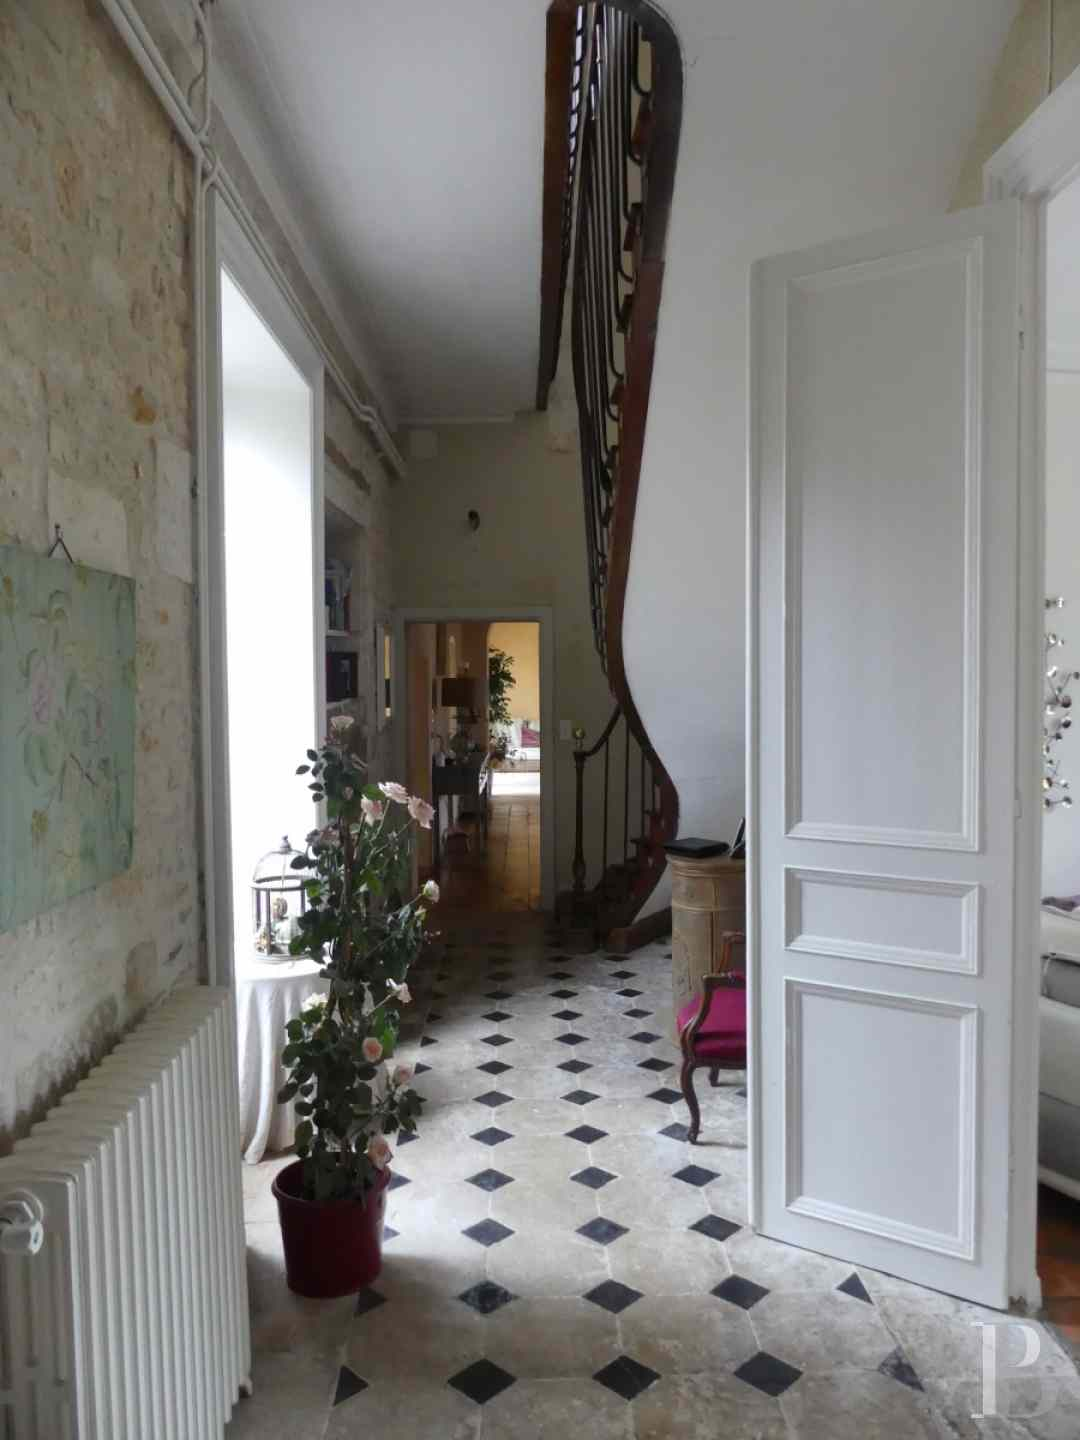 property for sale France pays de loire residences mansion - 6 zoom